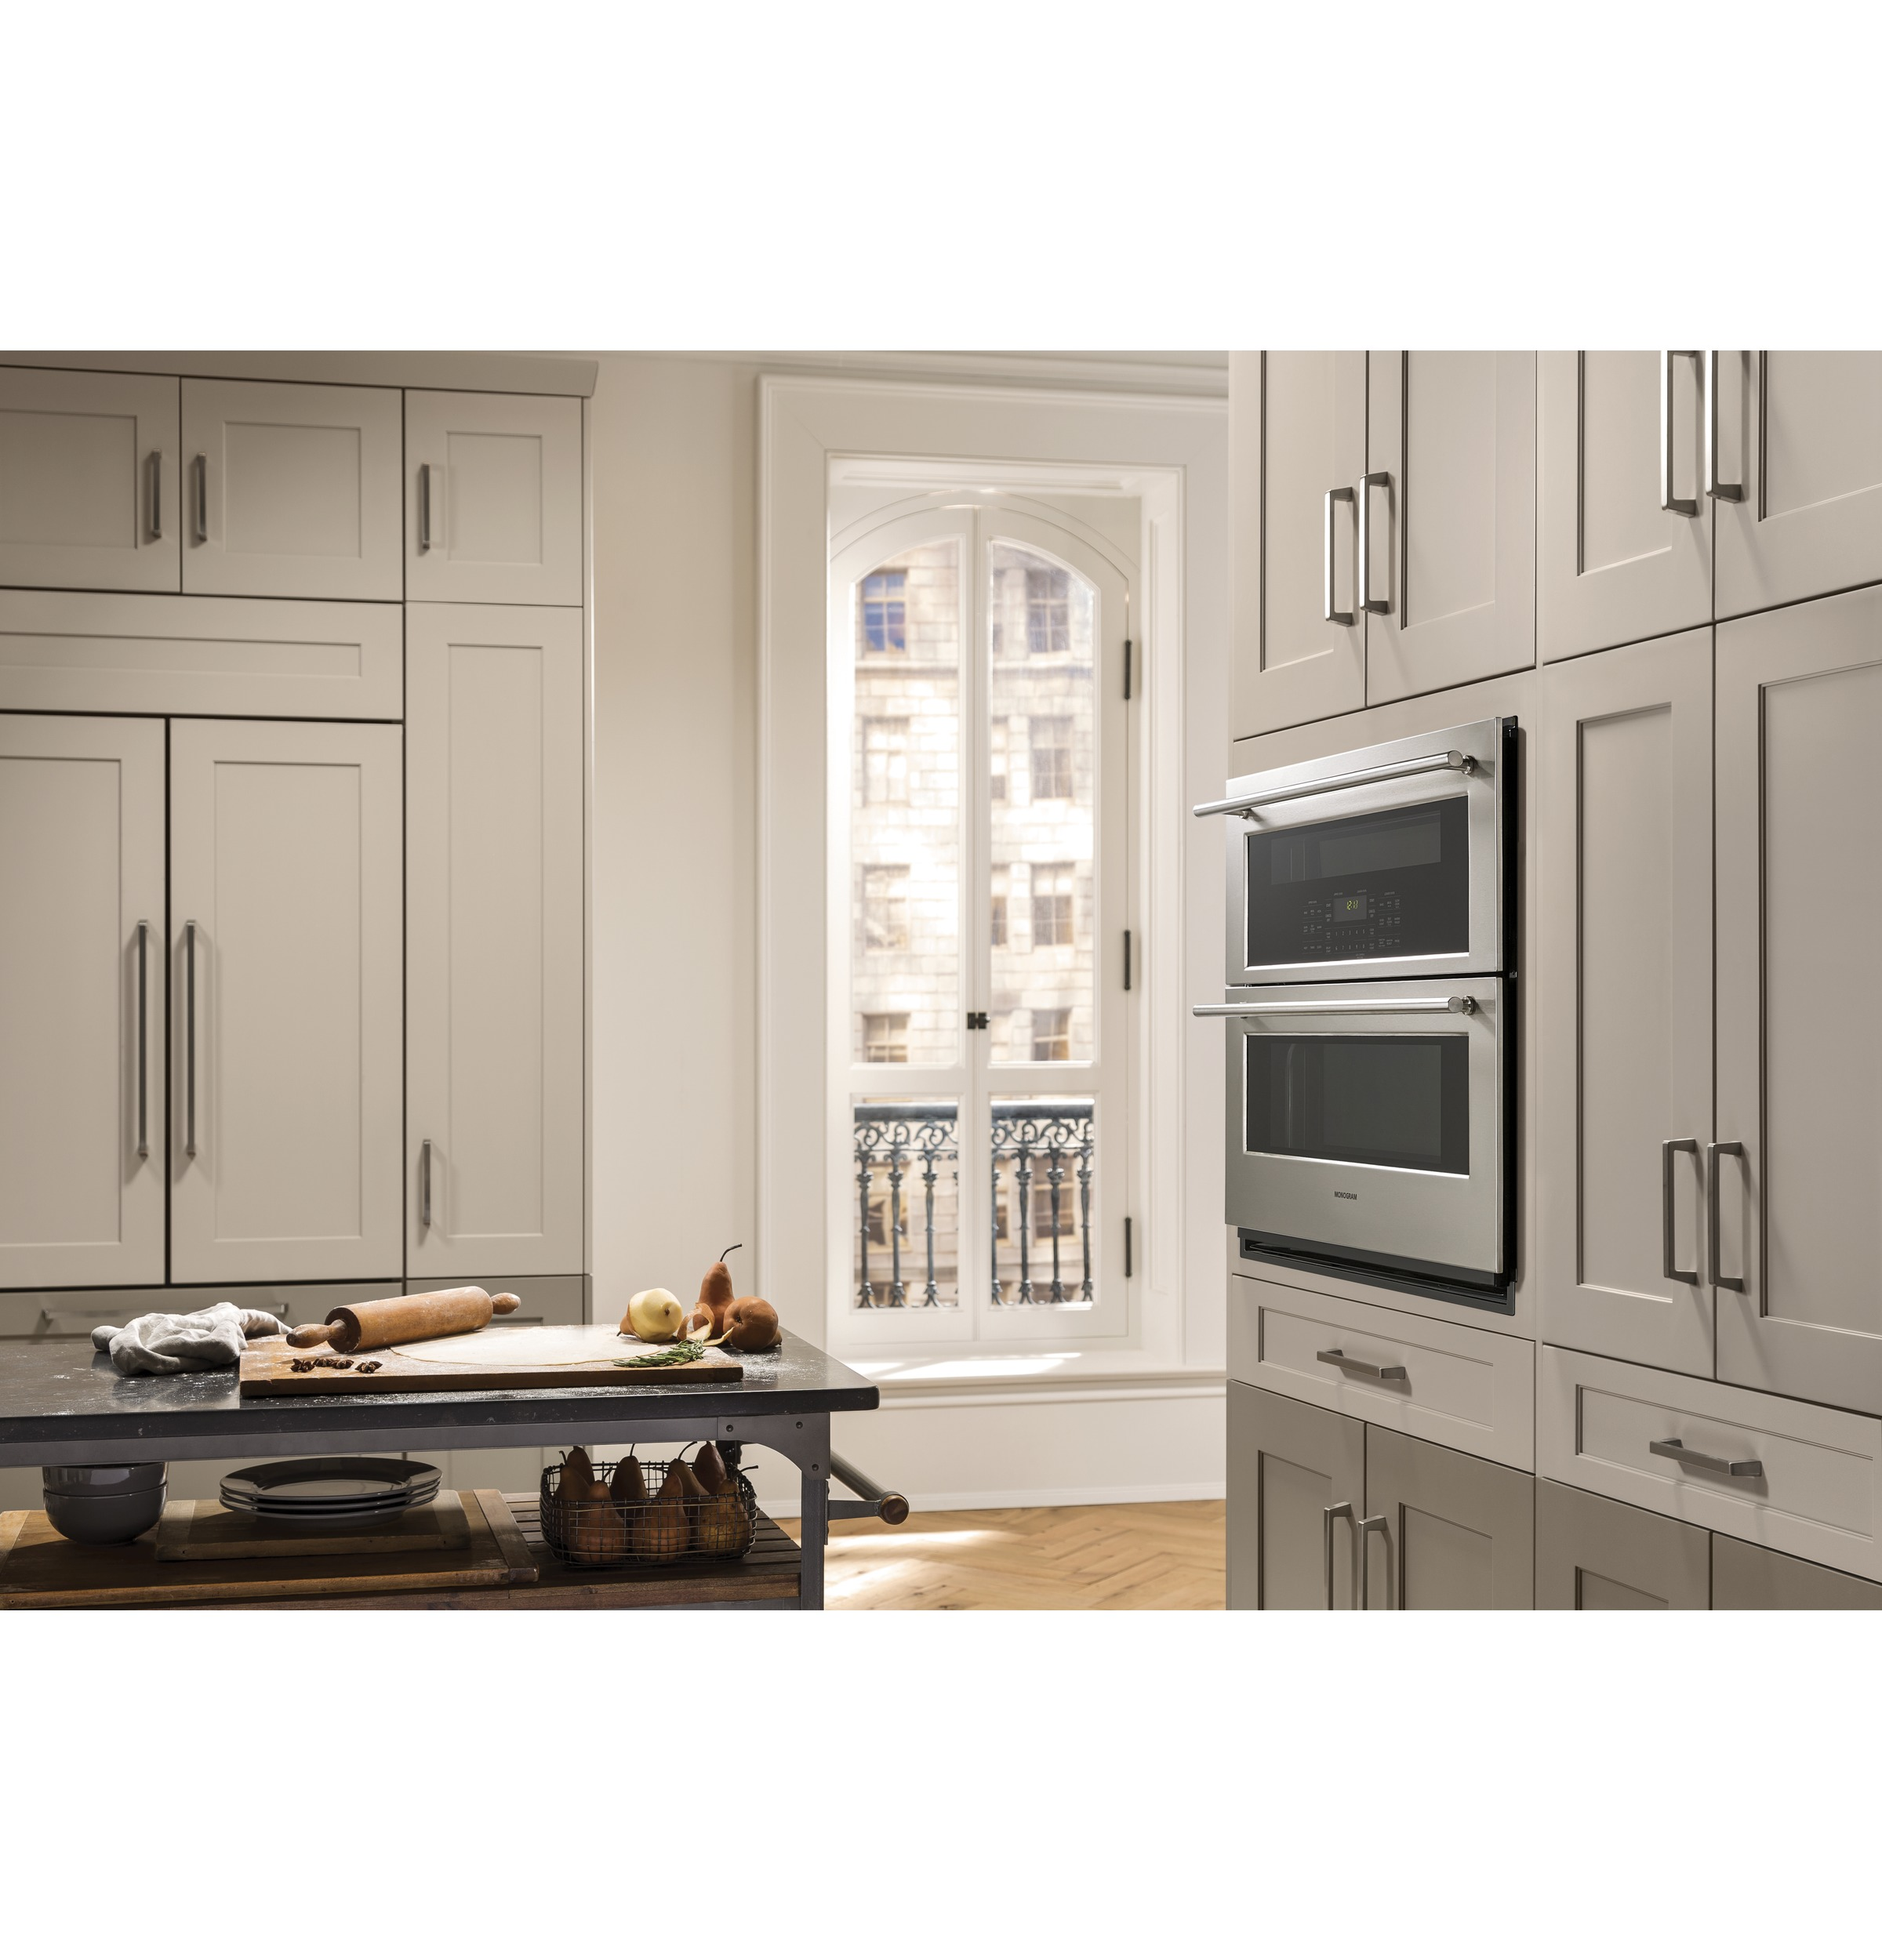 "Hearth Oven: Monogram 30"" Built-In Single/Double Convection Wall Oven"